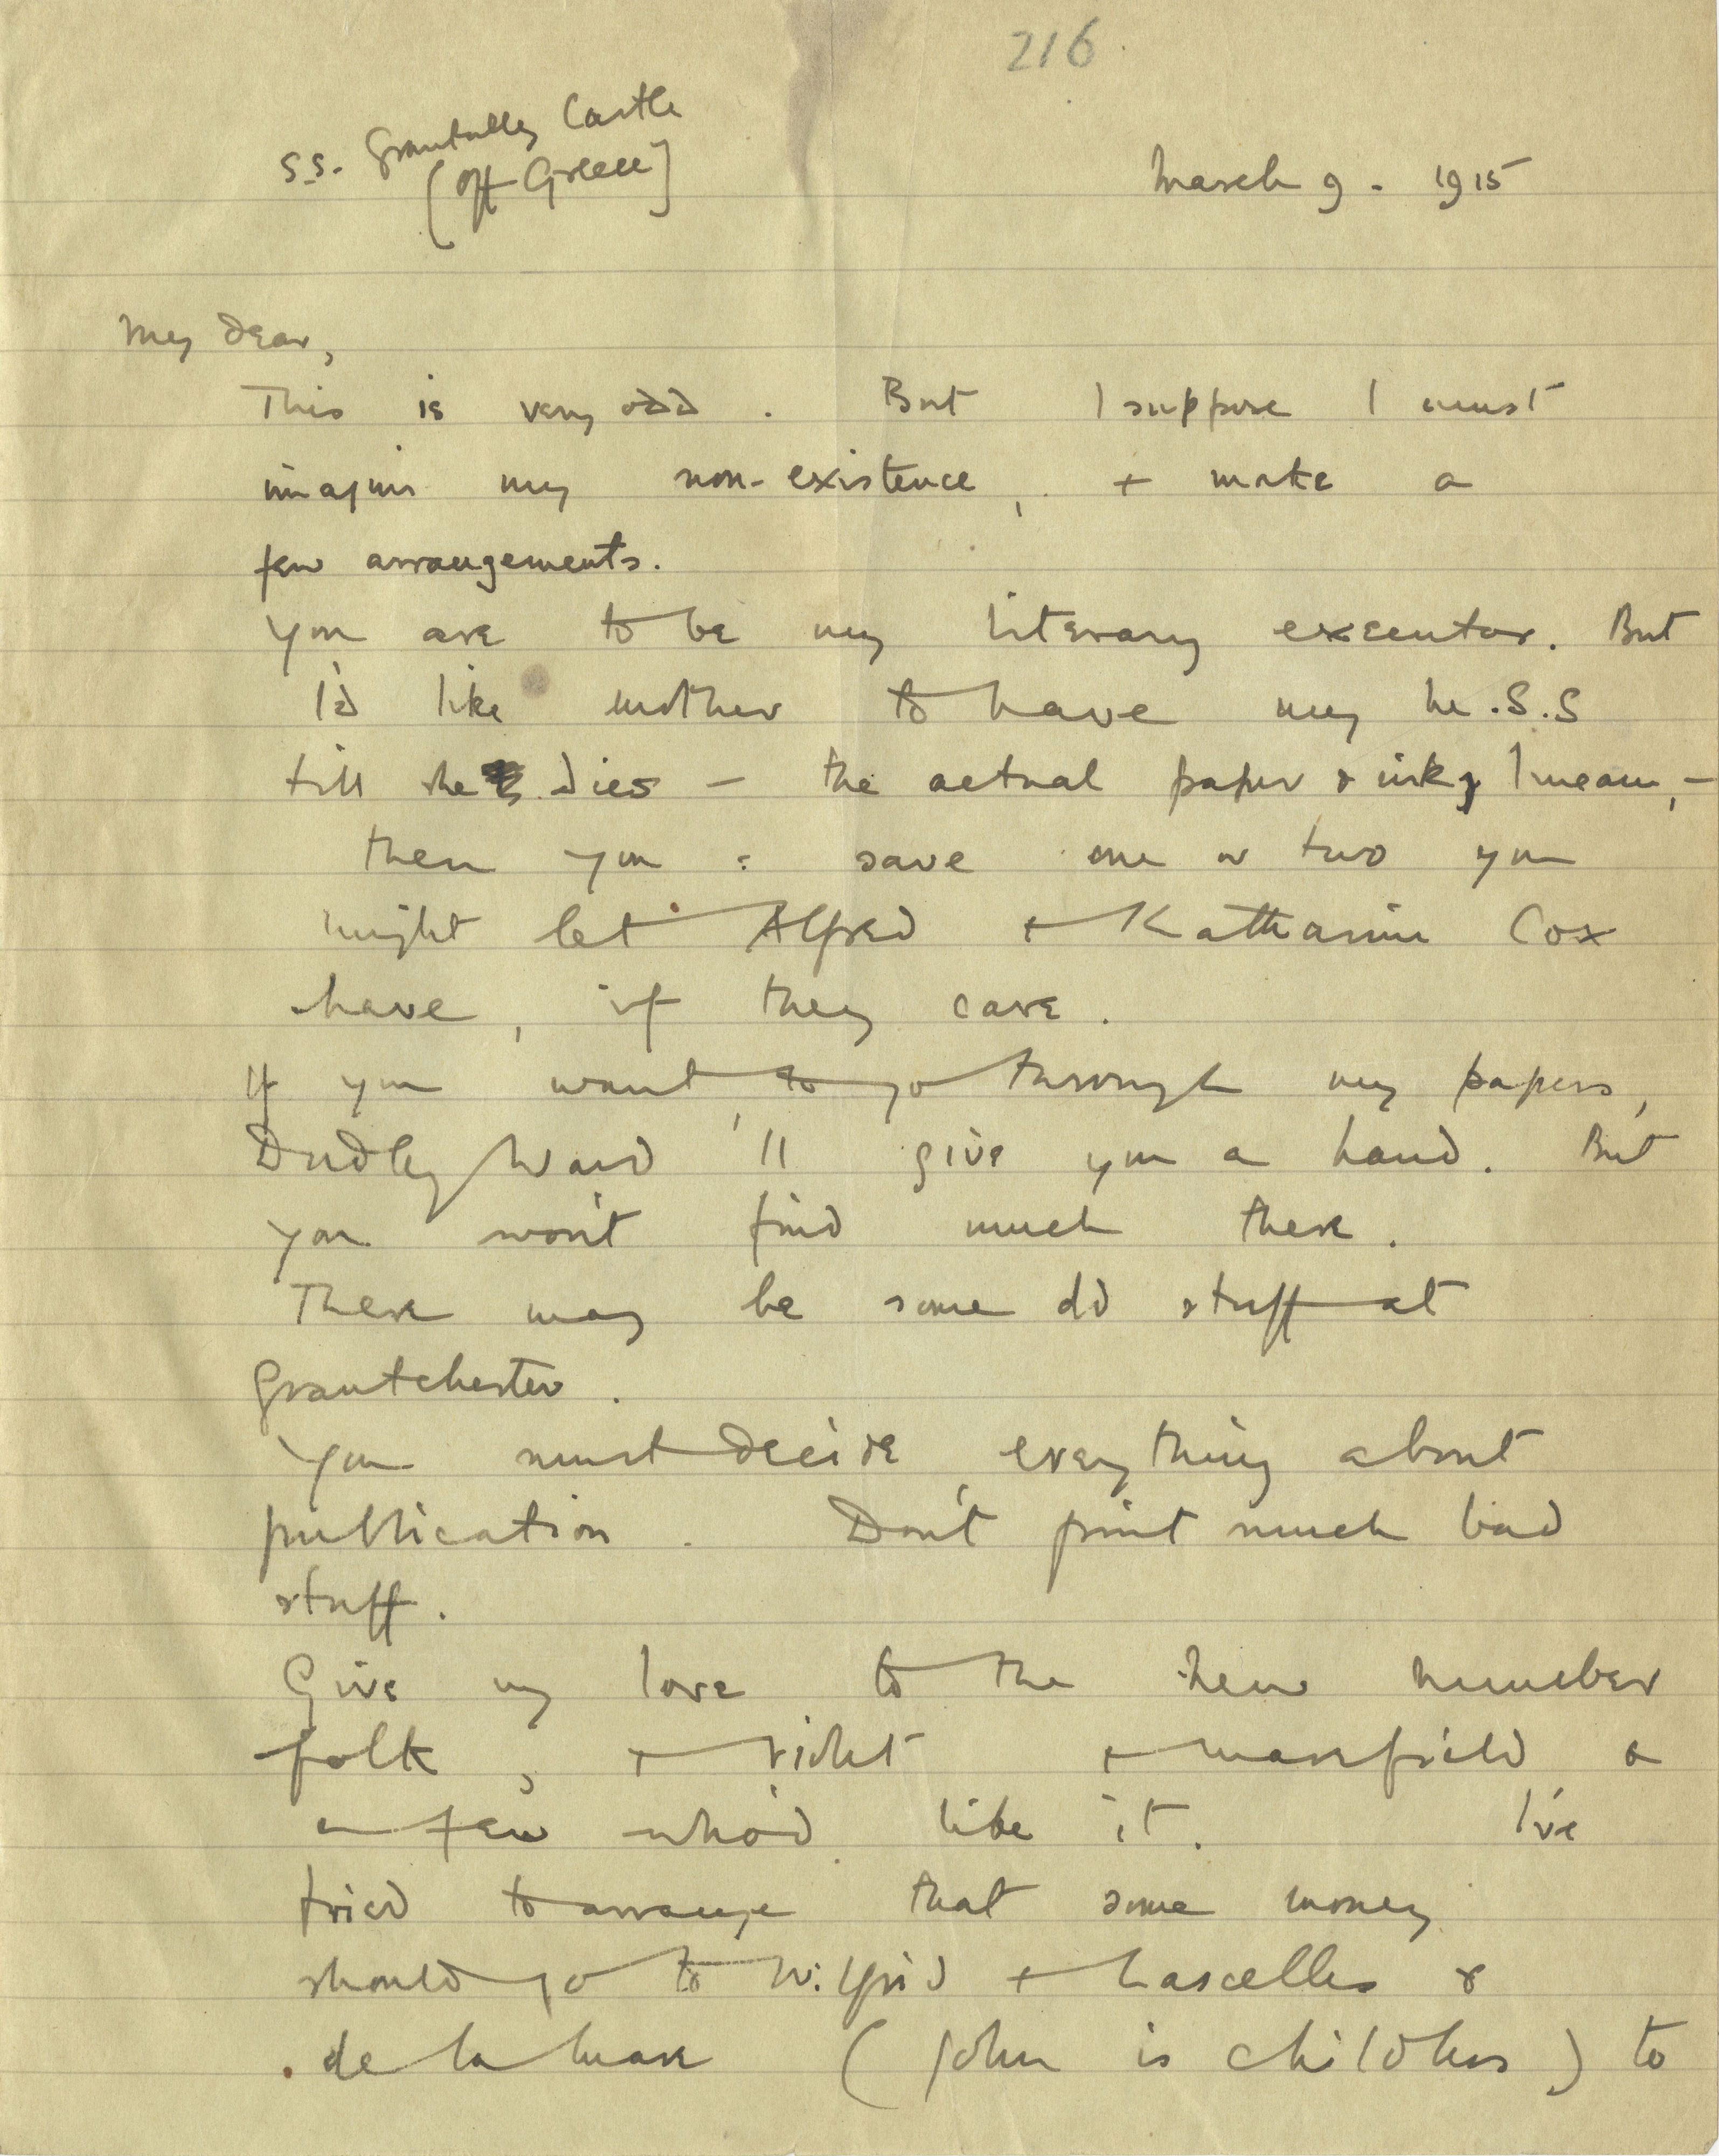 First page of a letter from Rupert Brooke to Edward Marsh, 9 March 1915 (RCB/S/5/2, 216)